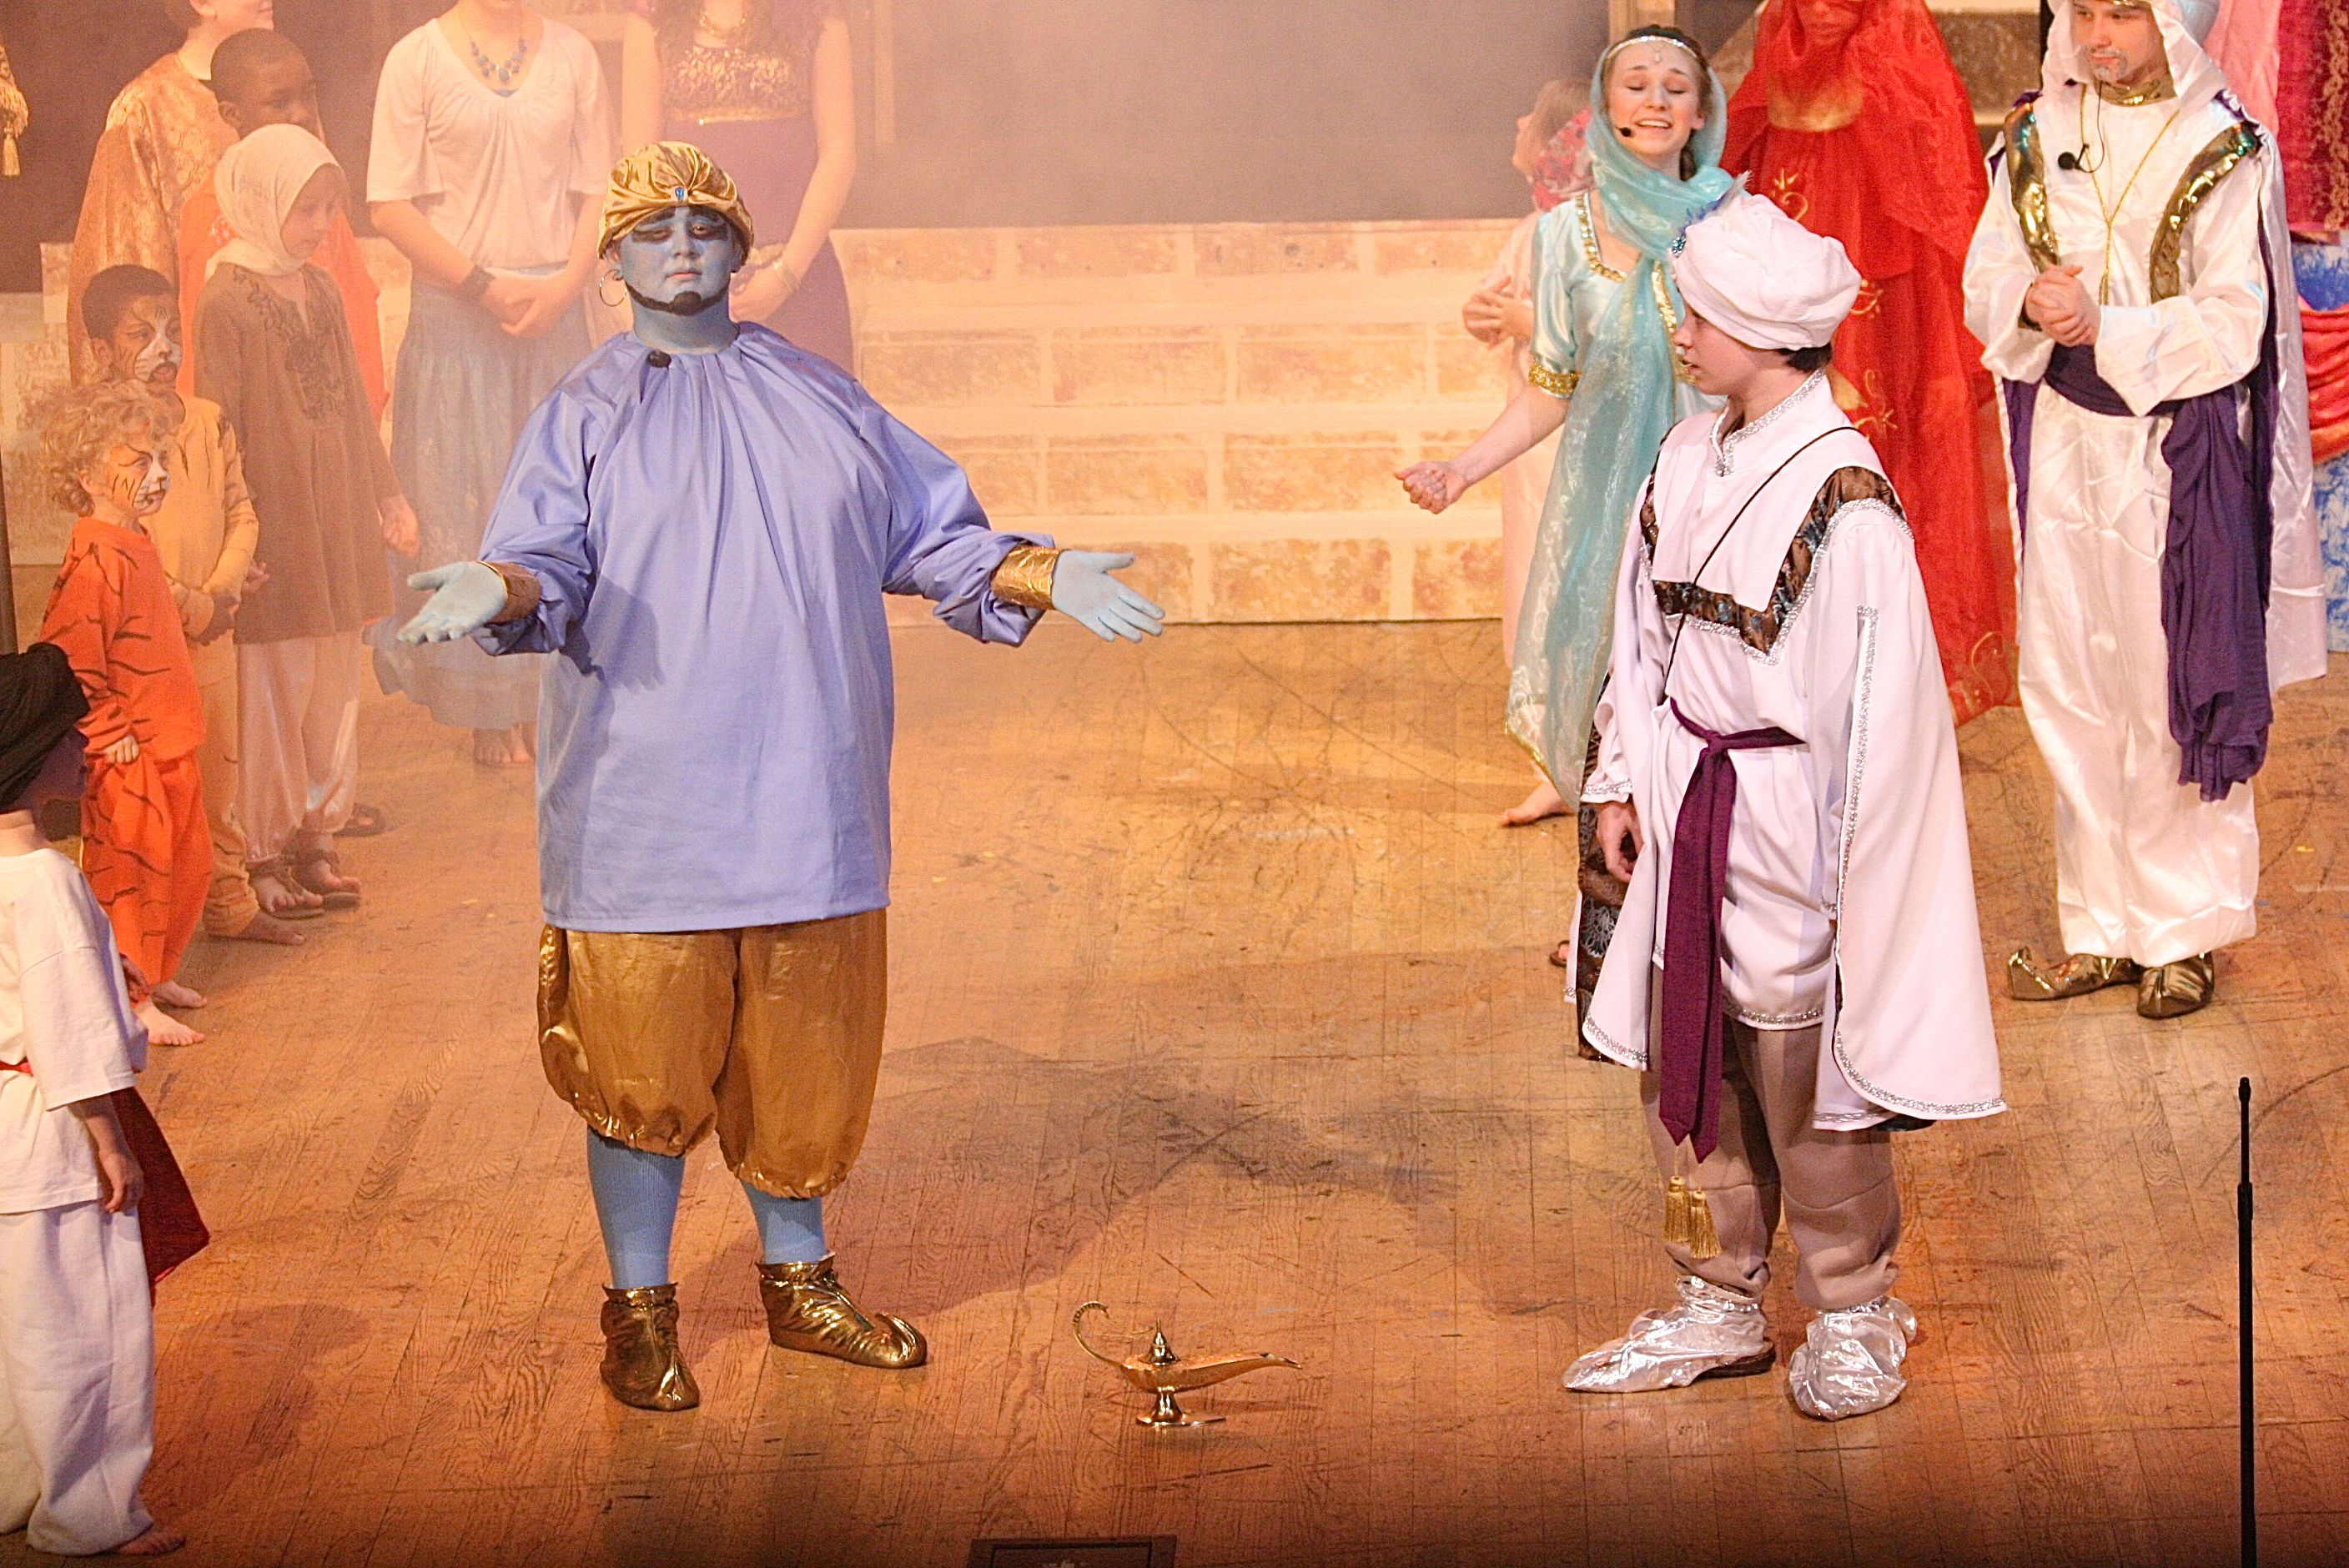 "Bluefield Youth Theatre at Bluefield College presents four performances of the Disney classic ""Aladdin.""  https://www.facebook.com/media/set/?set=a.10151525128043705.1073741838.56580013704=1"